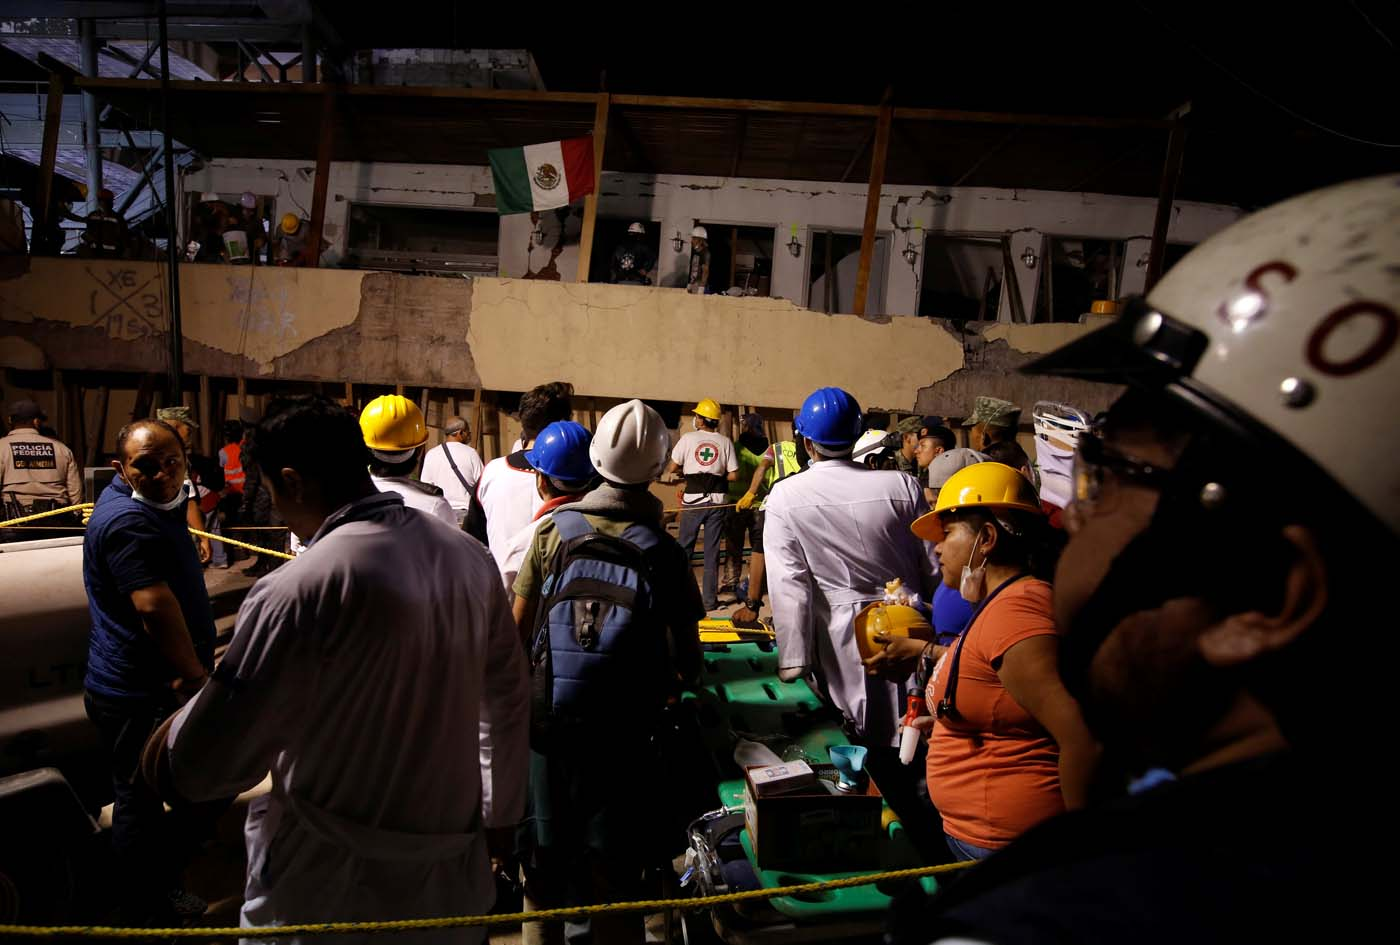 Rescue workers search through rubble in a floodlit search for students at Enrique Rebsamen school in Mexico City, Mexico September 19, 2017. Picture taken on September 19, 2017. REUTERS/Carlos Jasso